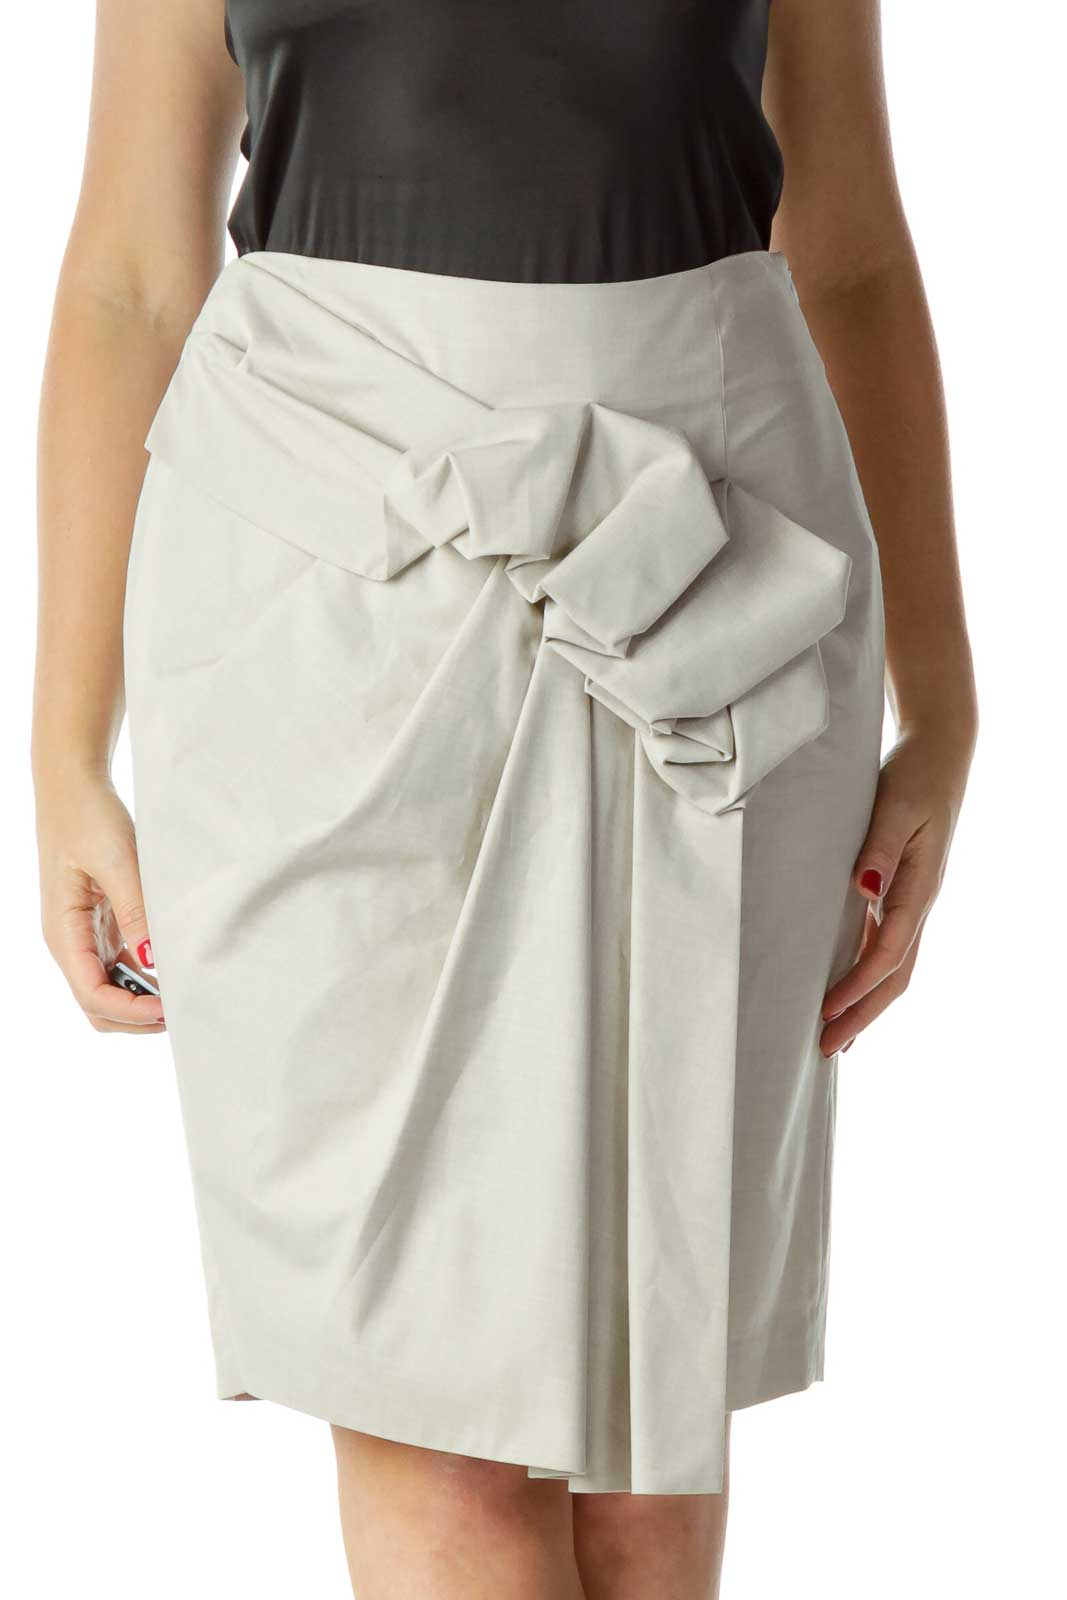 Gray Ruffled Pencil Skirt